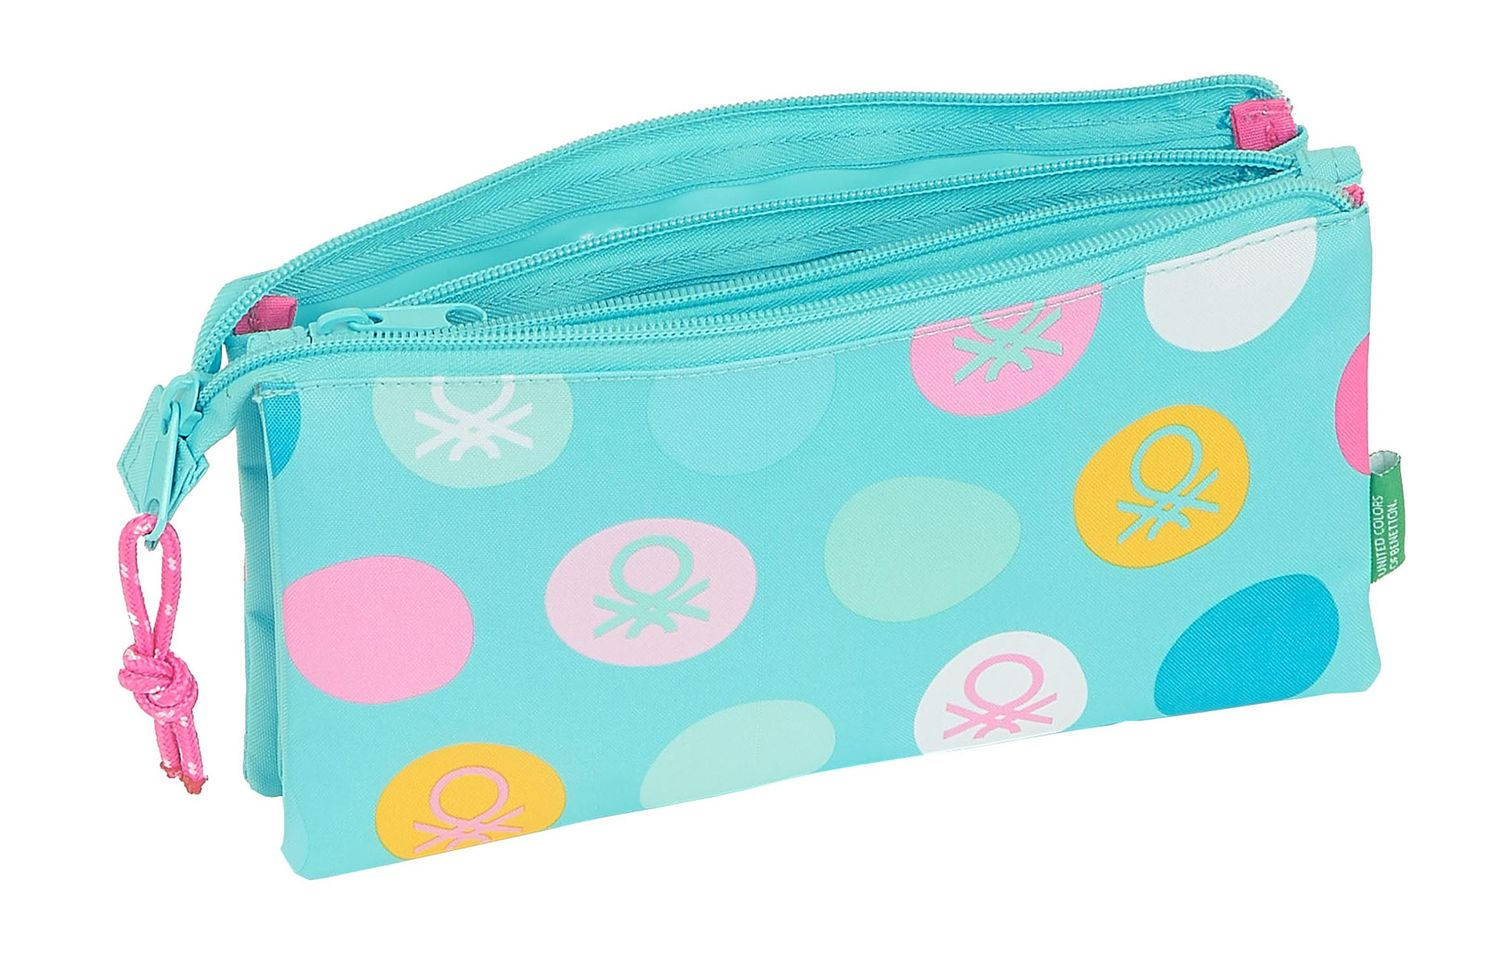 BENETTON TURQUOISE POLKA DOTS Triple Pencil Case – image 2